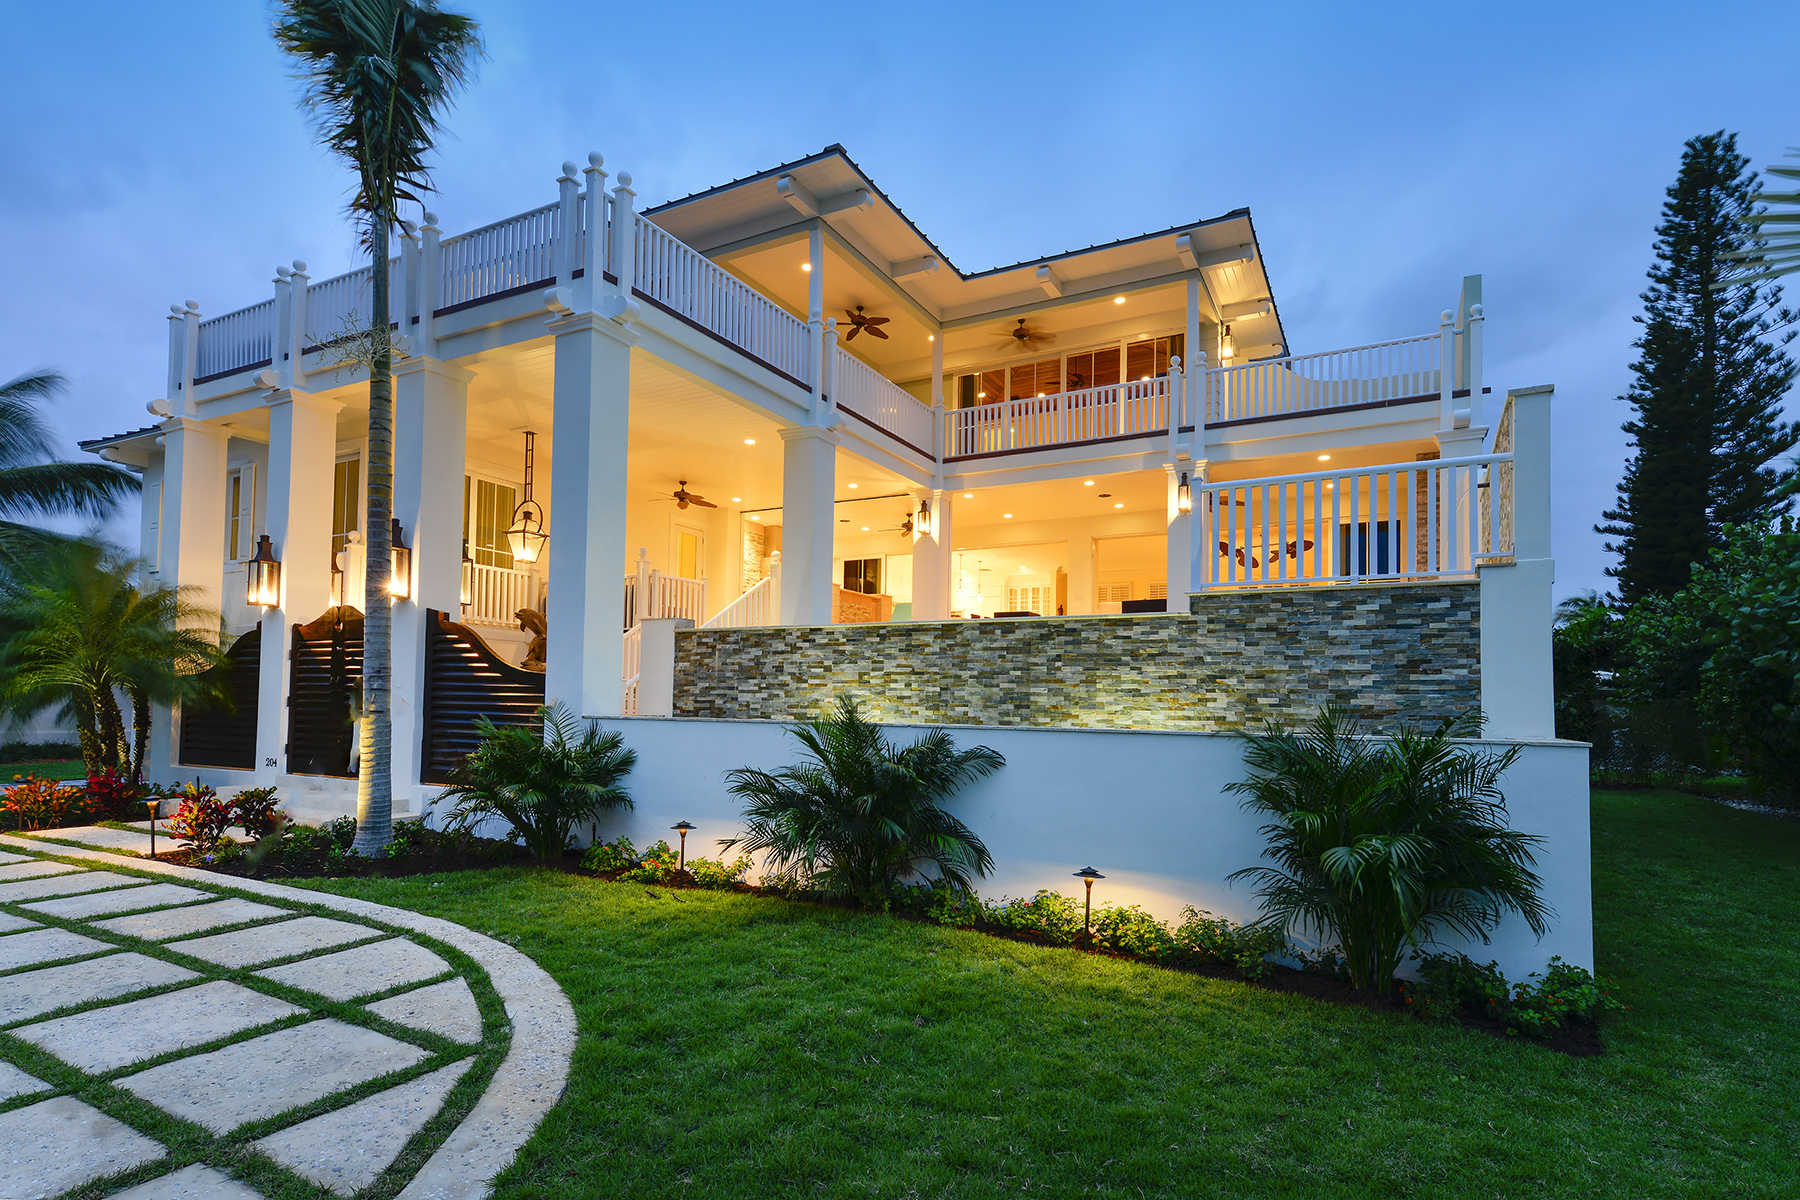 Single Family Home for Sale at Spectacular Villa Cay Home at Ocean Reef 204 Andros Road, Ocean Reef Community, Key Largo, Florida, 33037 United States